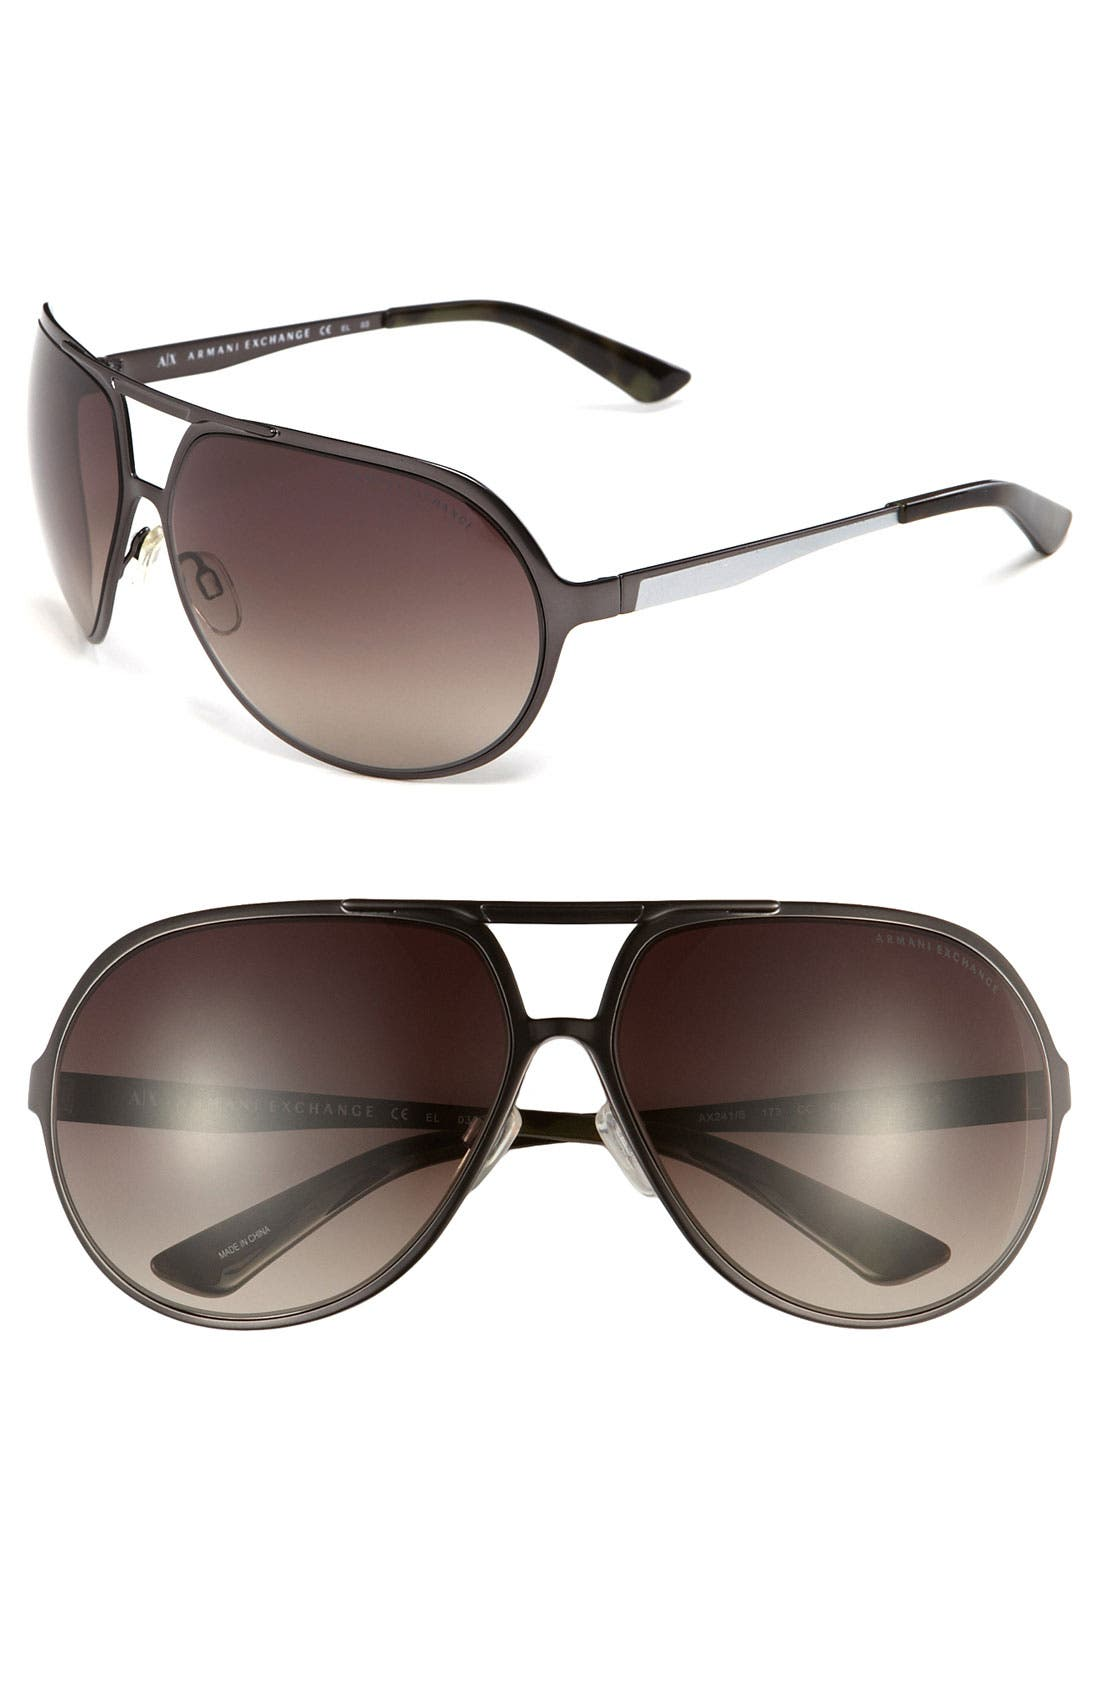 Main Image - AX Armani Exchange Aviator Sunglasses